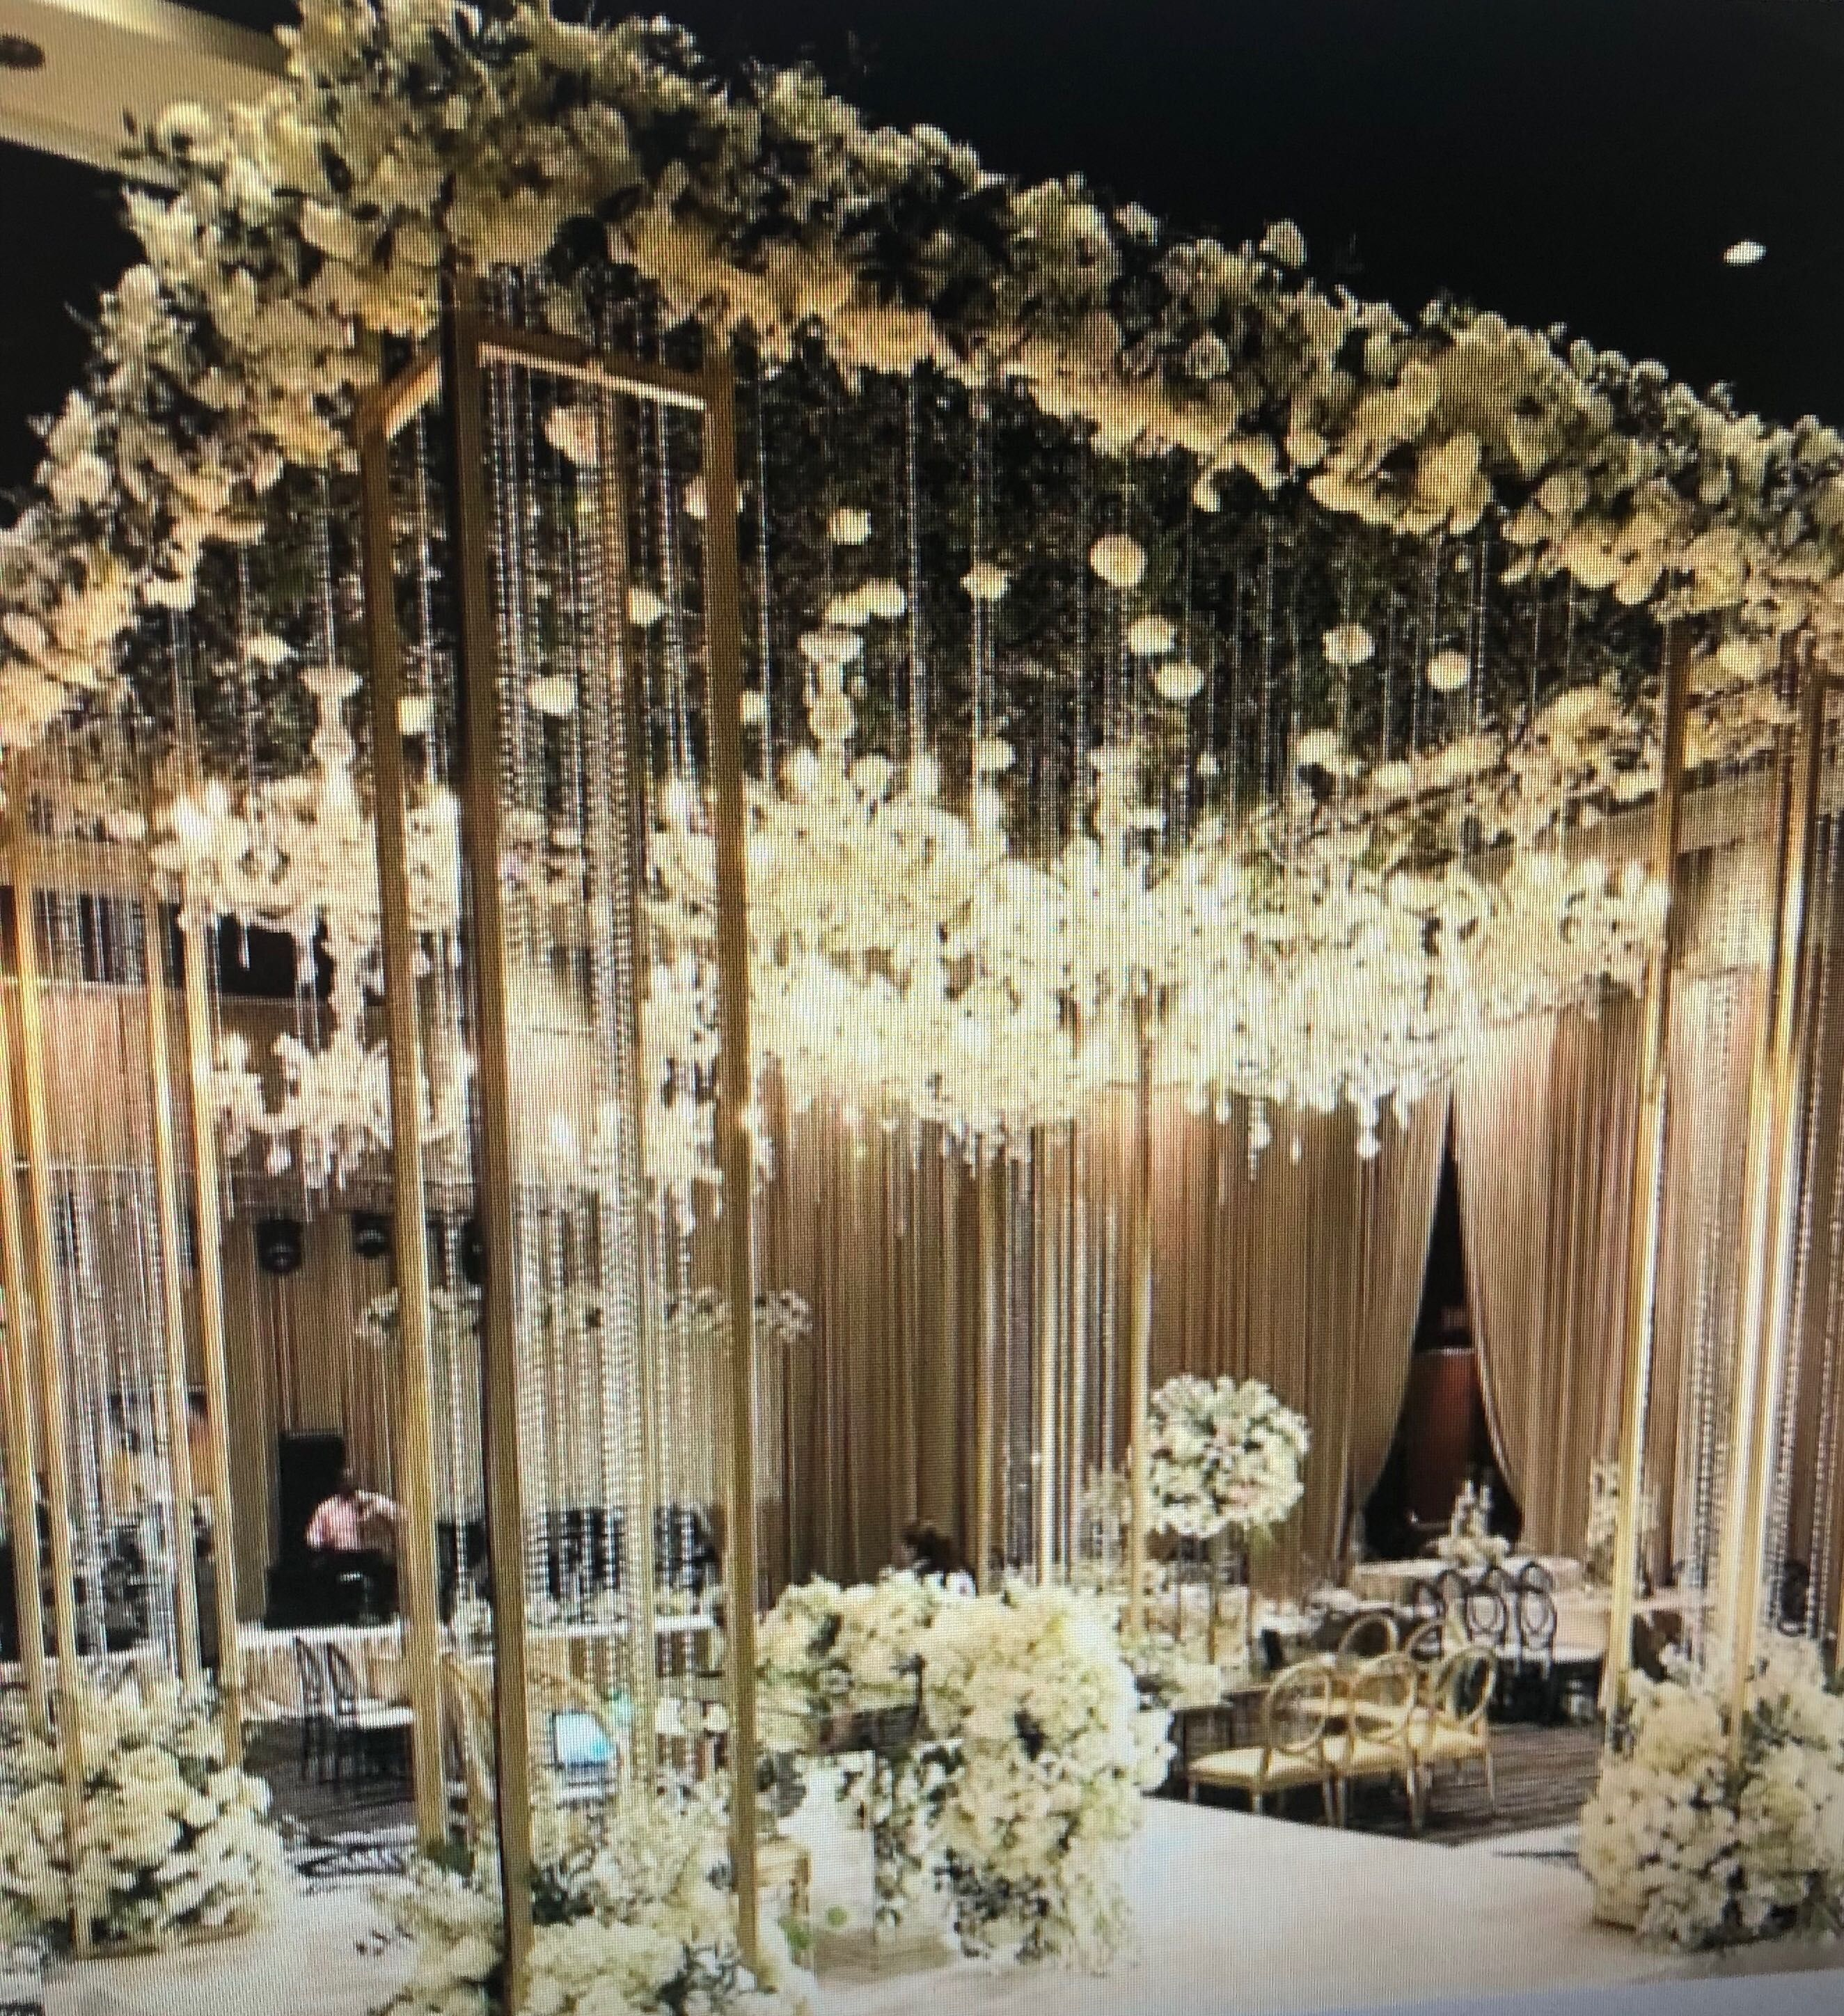 Indoor Wedding Reception Ideas: Pin By Preeti D. On Wedding Reception In 2019